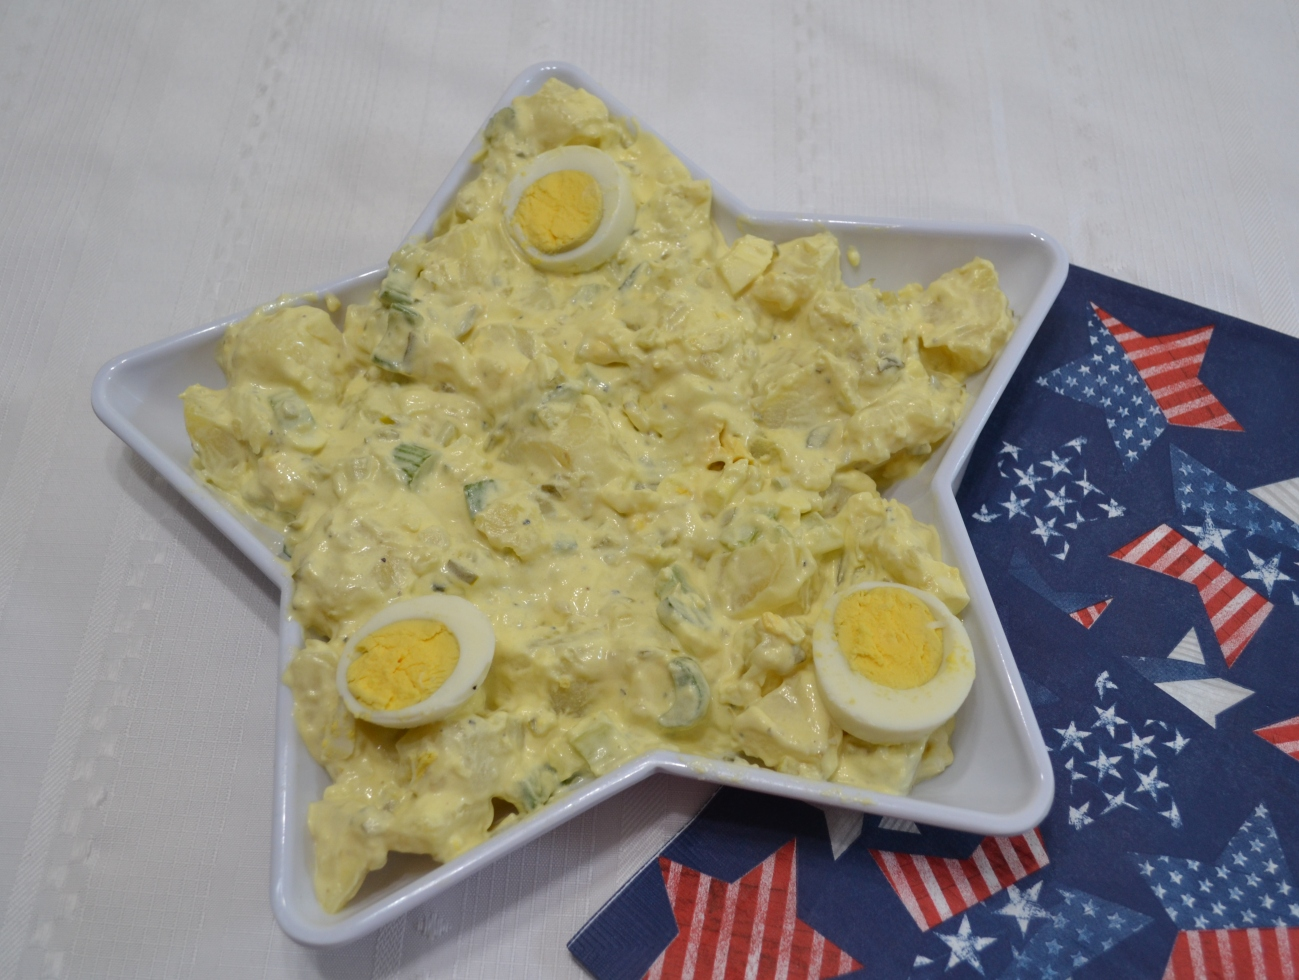 An old fashioned homemade potato salad recipe.